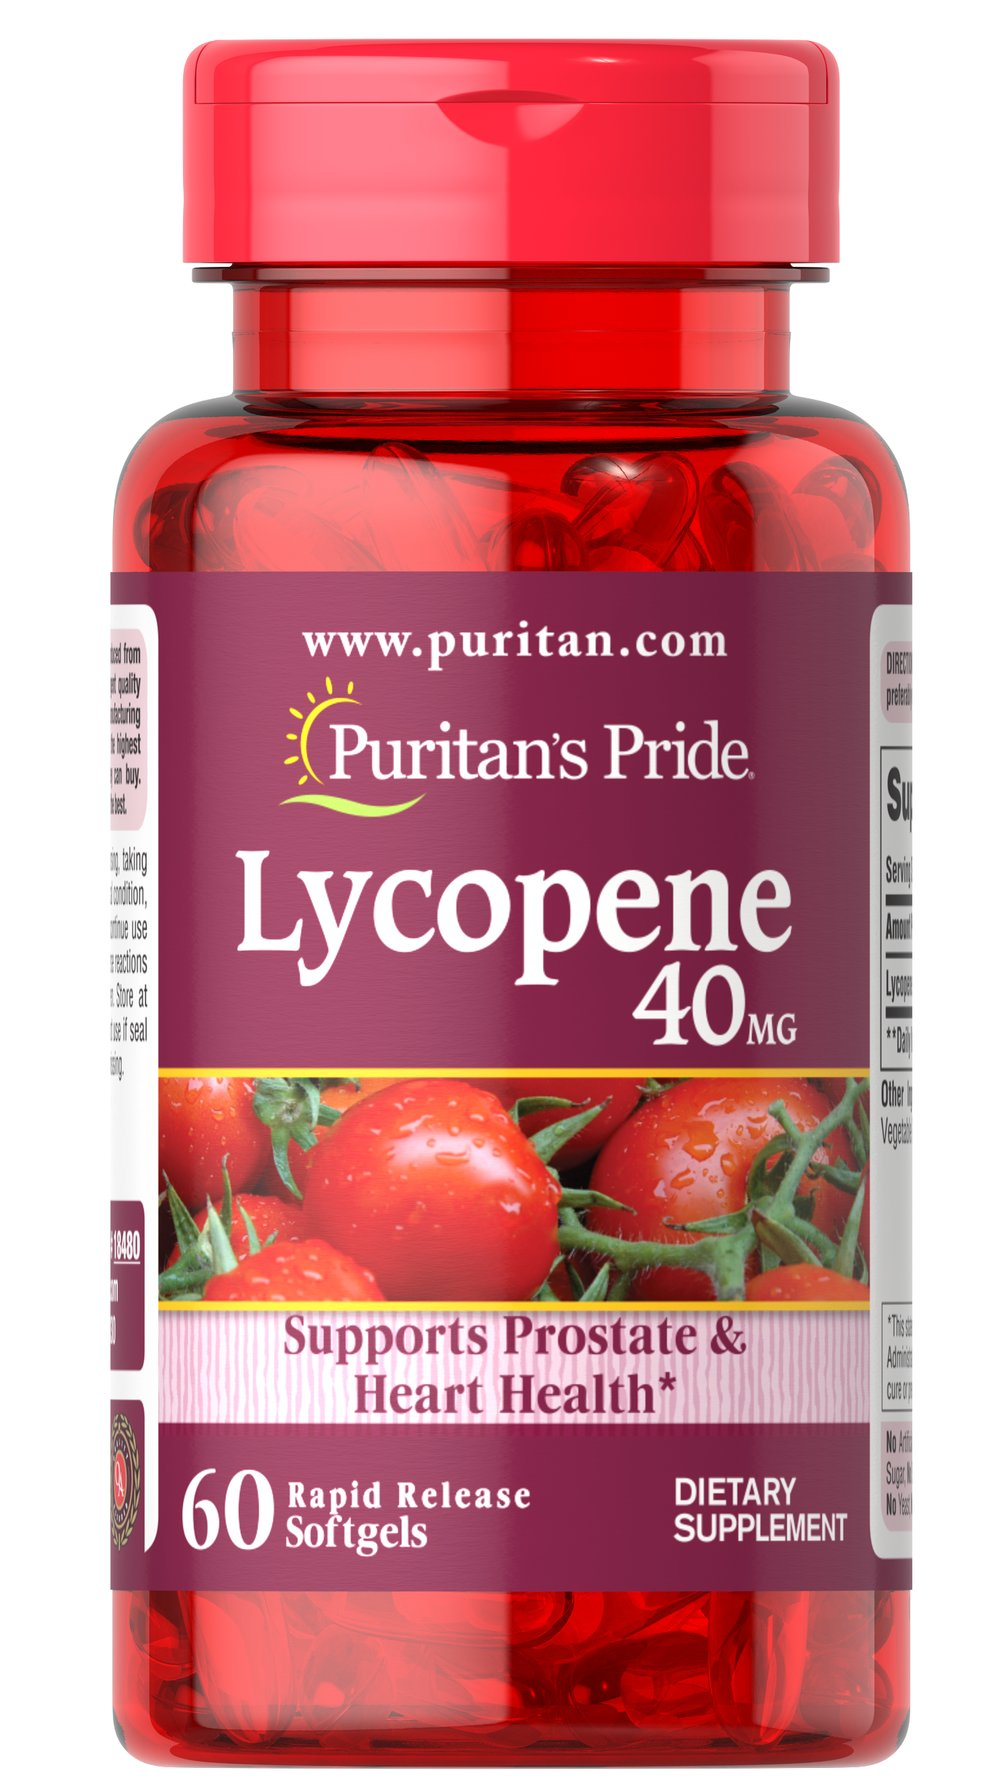 Lycopene 40 mg <p>Lycopene, a naturally occurring carotenoid, possesses antioxidant properties which help neutralize harmful free radicals in cells, and play a role in maintaining good health.**  Lycopene promotes prostate and heart health, and supports the immune system.** Adults can take one softgel daily with a meal.</p> 60 Softgels 40 mg $39.99